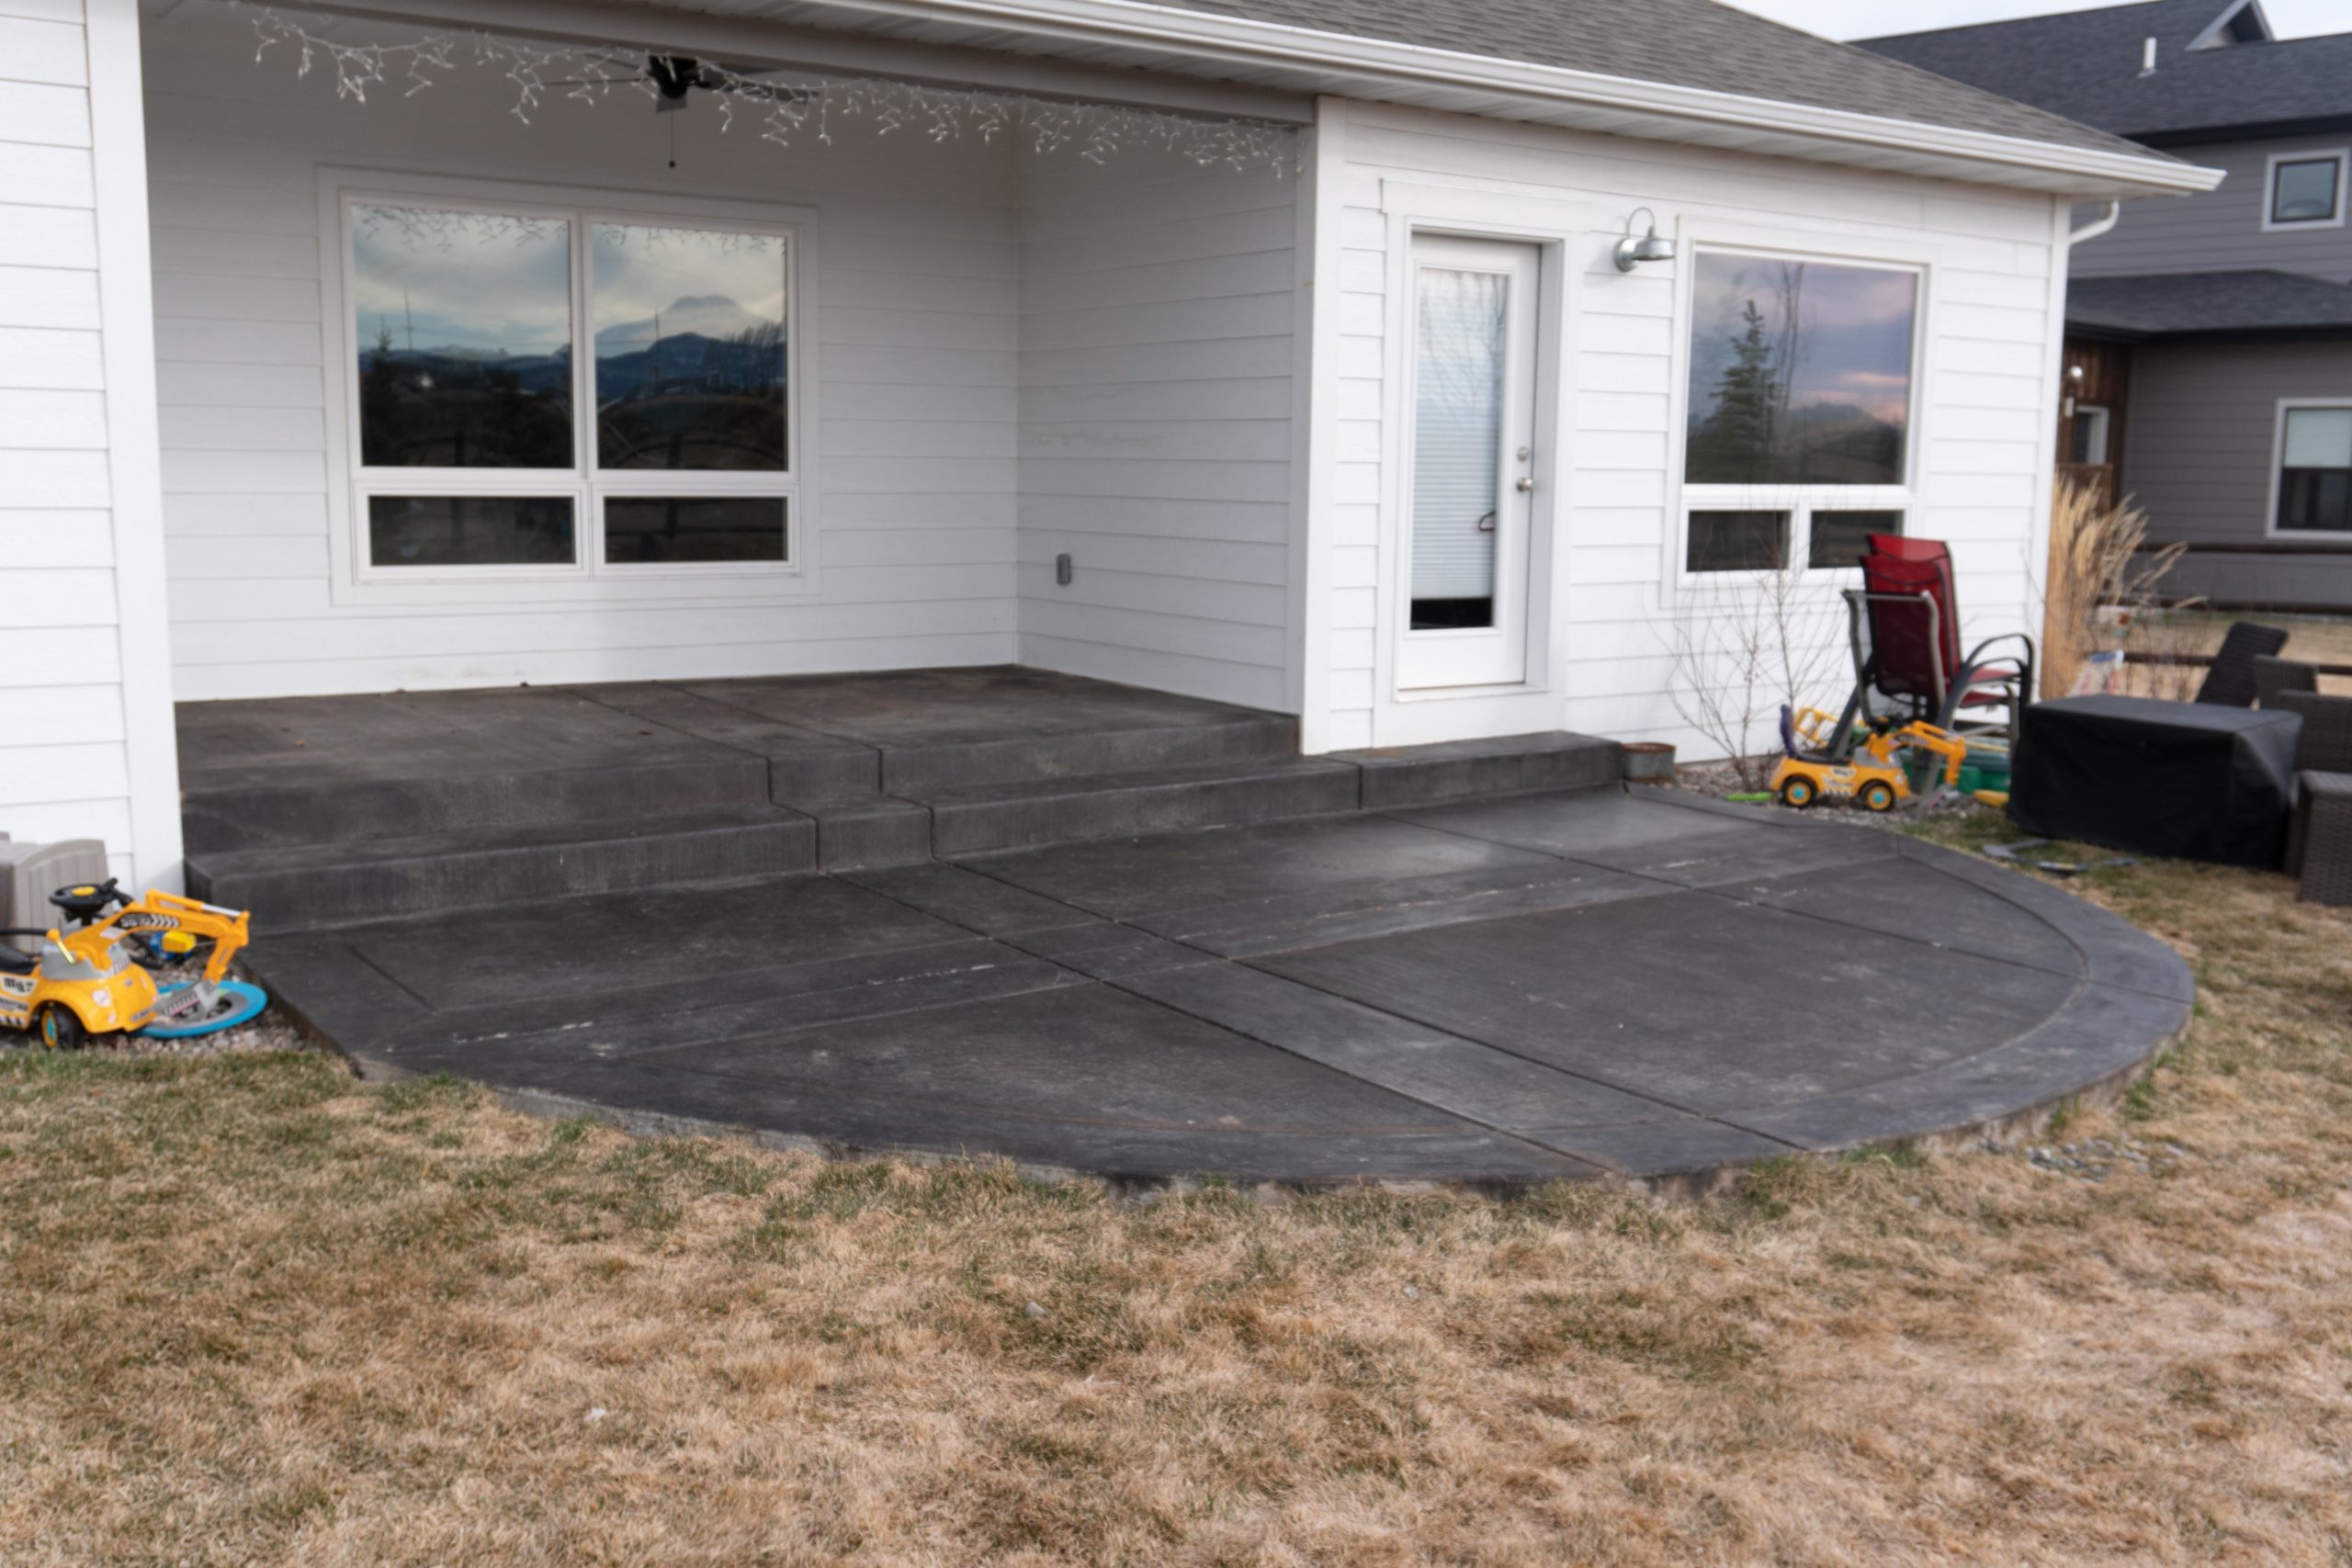 //www.koconcretecoatings.com/wp-content/uploads/2020/07/project1-Patio-2-scaled.jpg